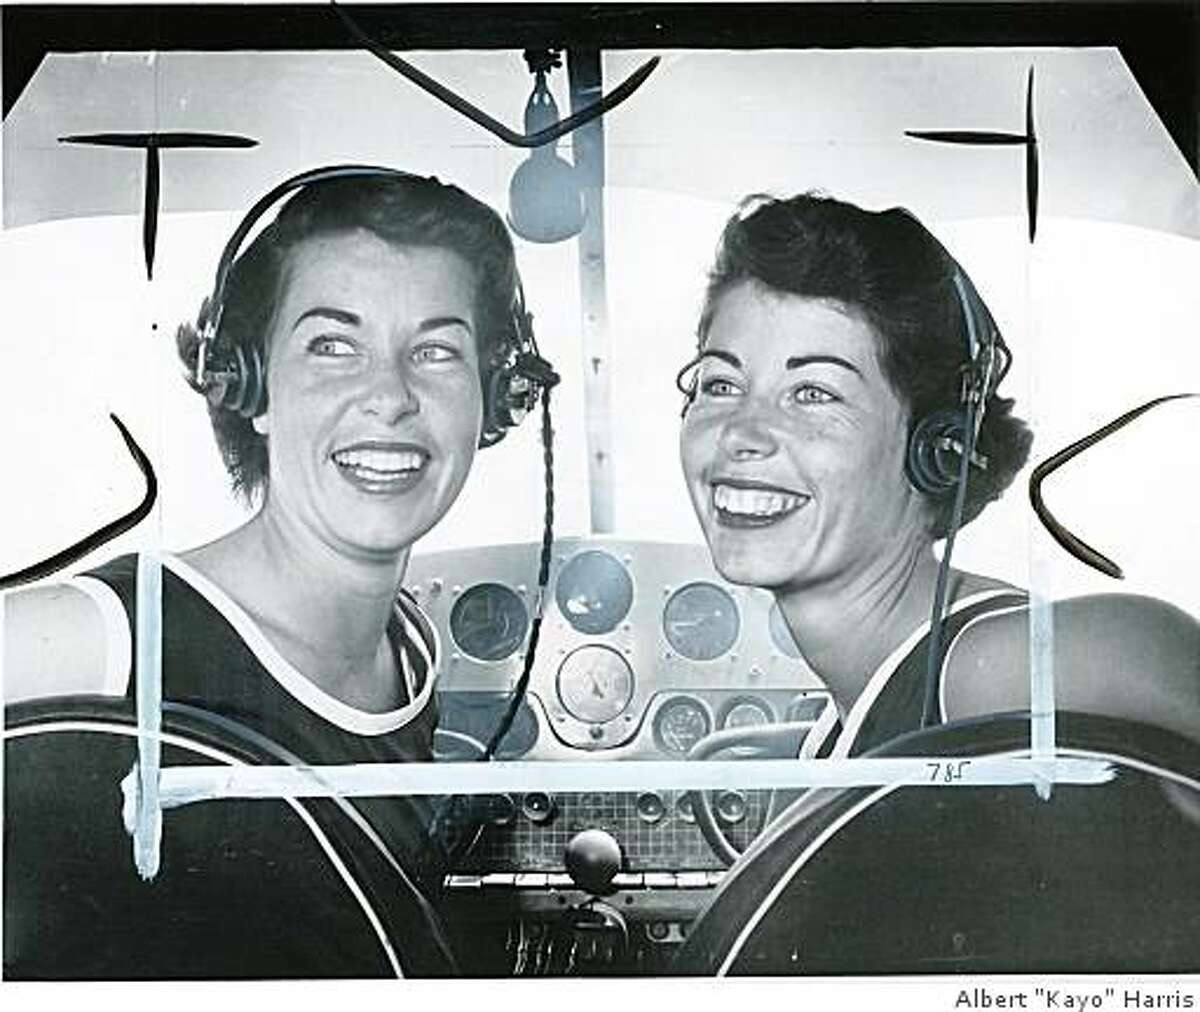 Jan(left) Marion(right)Obit photo of Jan Dietrich, a pilot and member of the Mercury 13 Astronaut Training Program- Shown in this 1961 photo in the cockpit of a plane with her twin sister, Marion (right) who was also a member of the Mercury 13.The Dietrich twins, high flying queens of the sky who are in training at Oakland Airport for the 2400-mile women